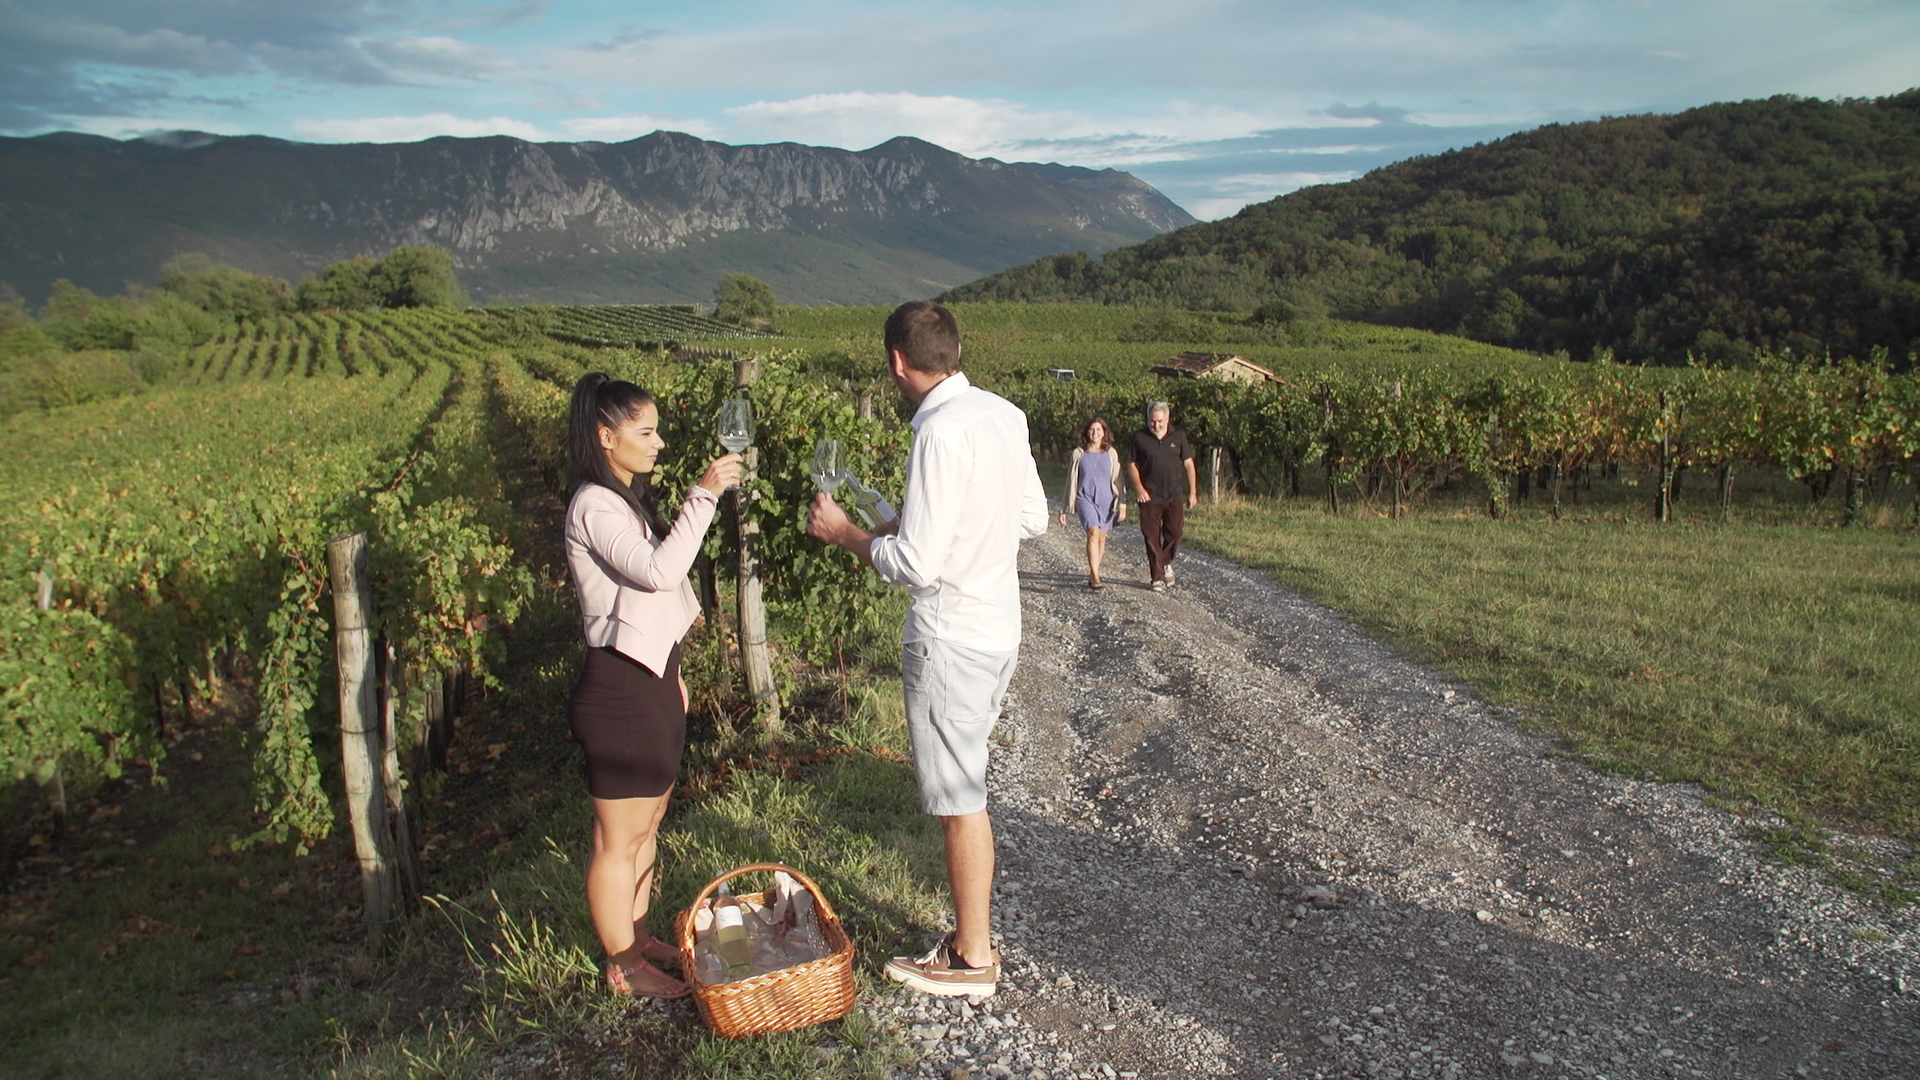 Preparing for a toast amongst the vineyards at Rondic Winery